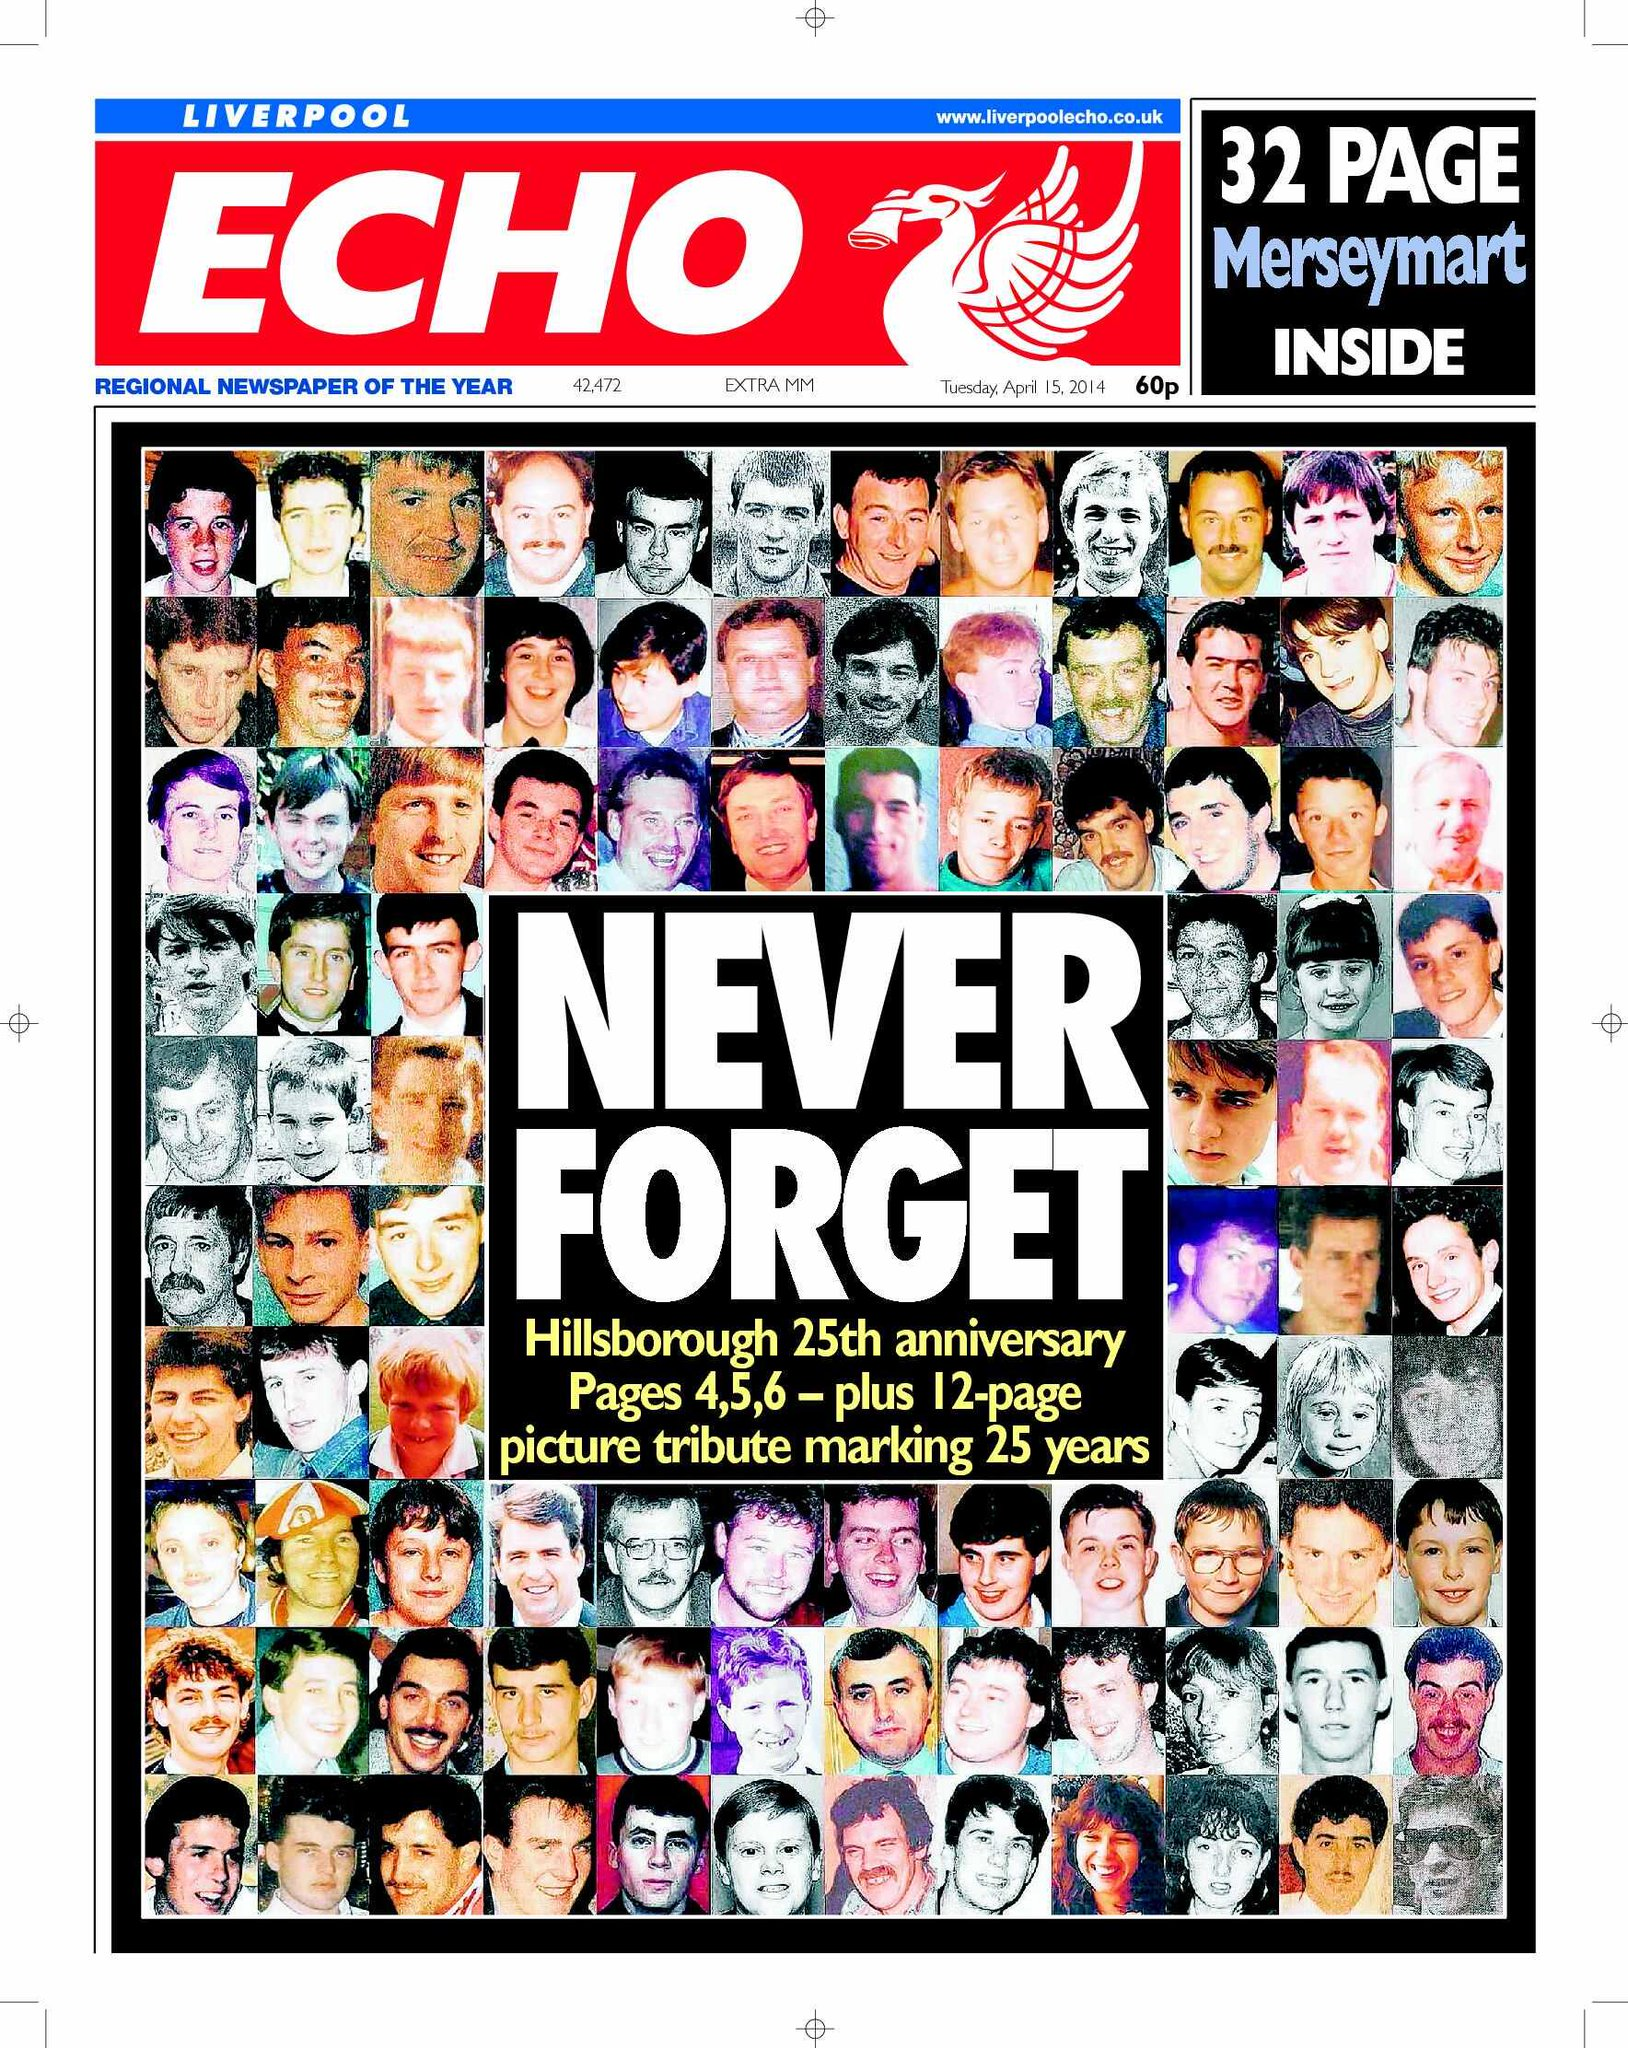 RT @LivEchonews: Here's our front page today #hillsborough #jft96 #neverforget http://t.co/AMTtlo1FHT